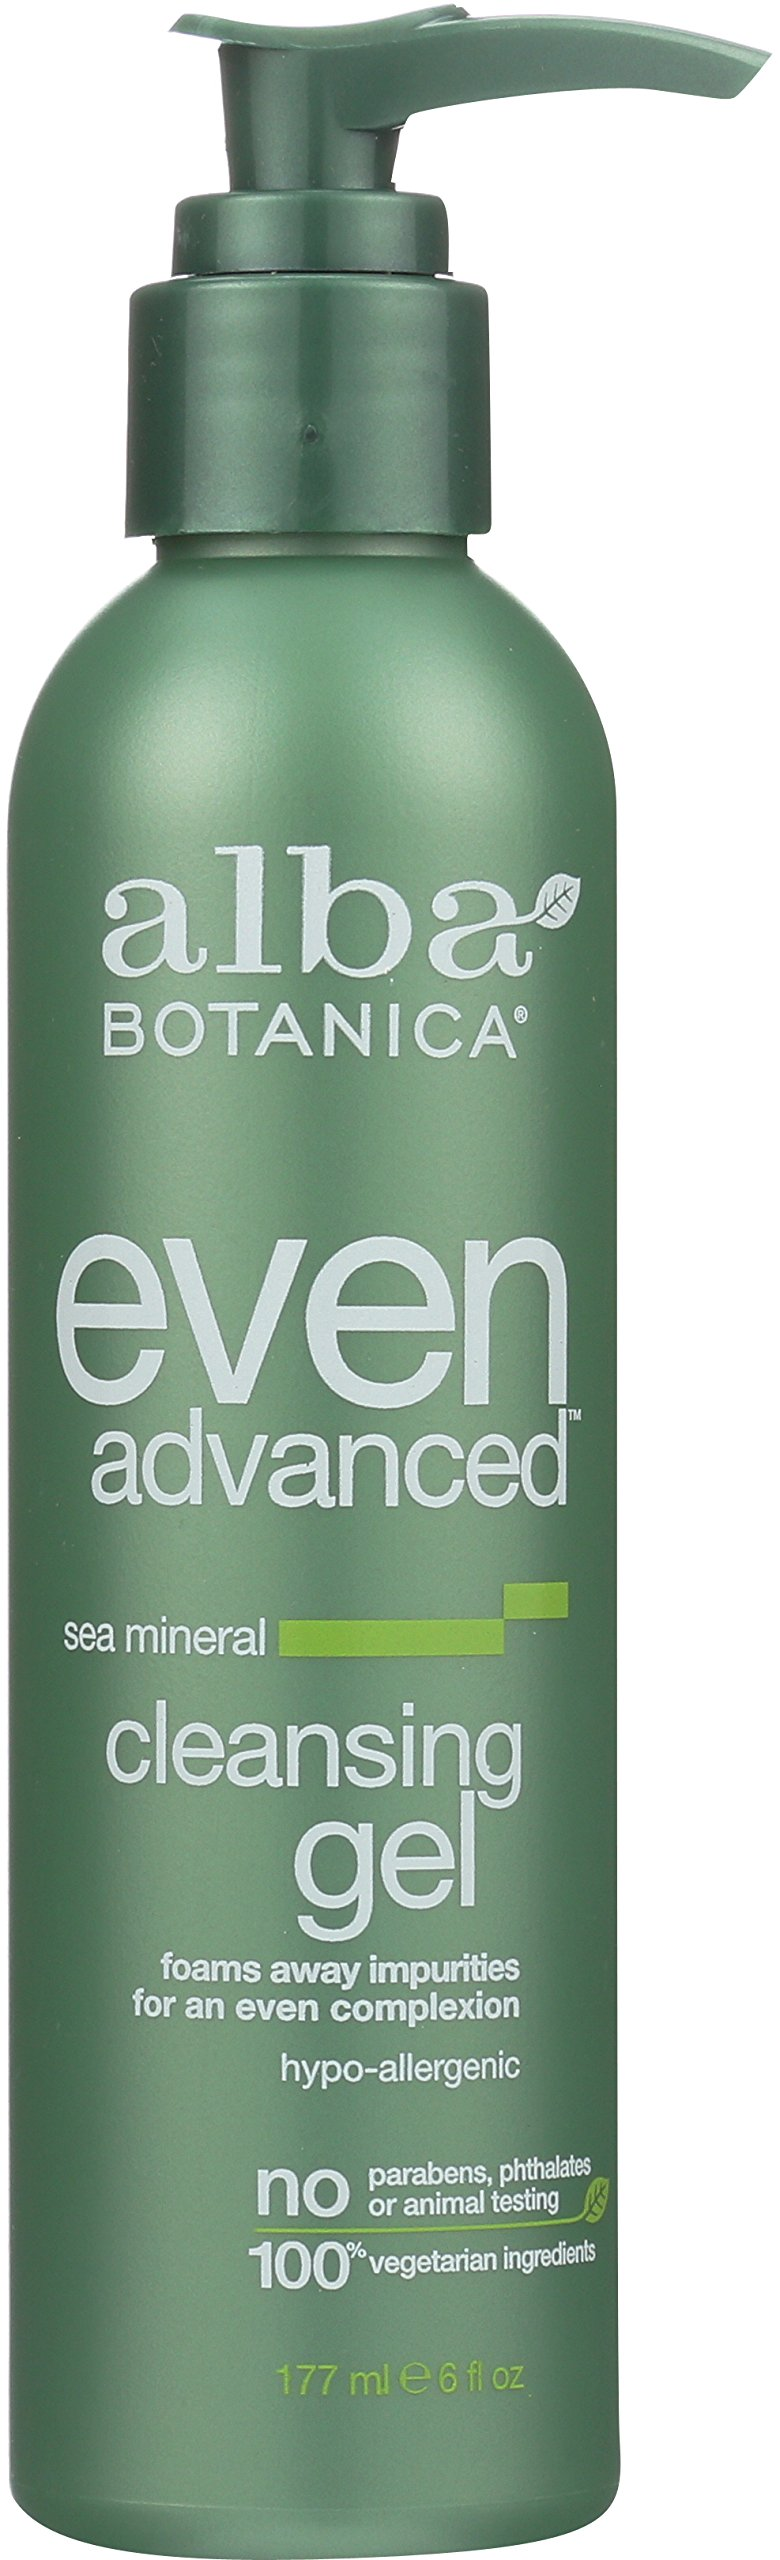 Alba Botanica Even Advanced, Sea Mineral Cleansing Gel, 6 Ounce